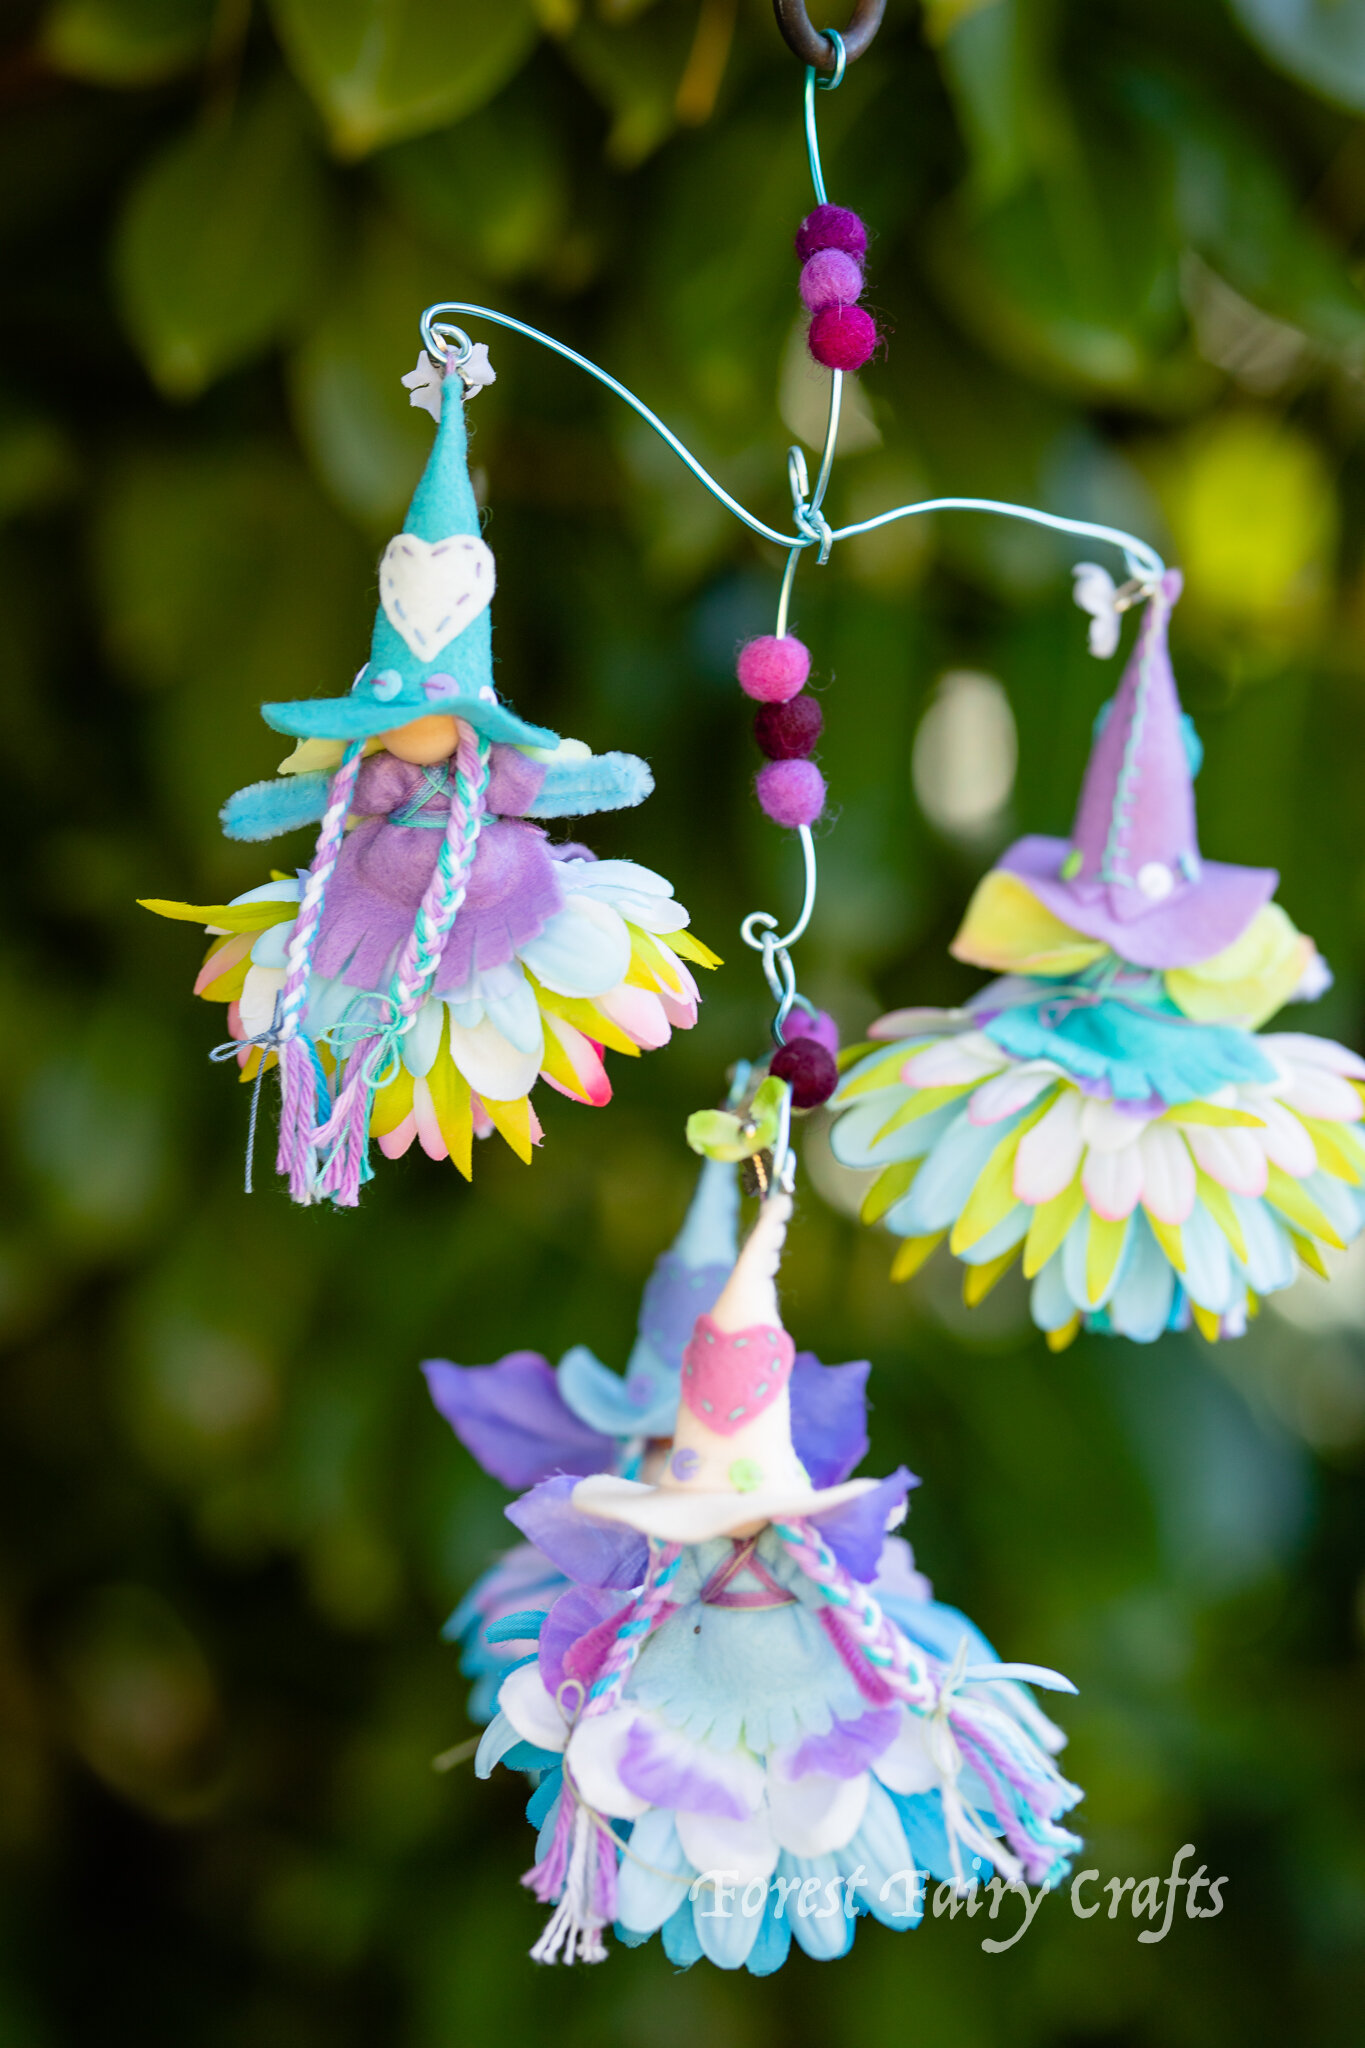 Fairy witch | Directions are in the Forest Fairy Crafts book by Lenka Vodicka-Paredes and Asia Currie | Bendy dolls for children | Waldorf and natural crafts teaching sewing and handwork